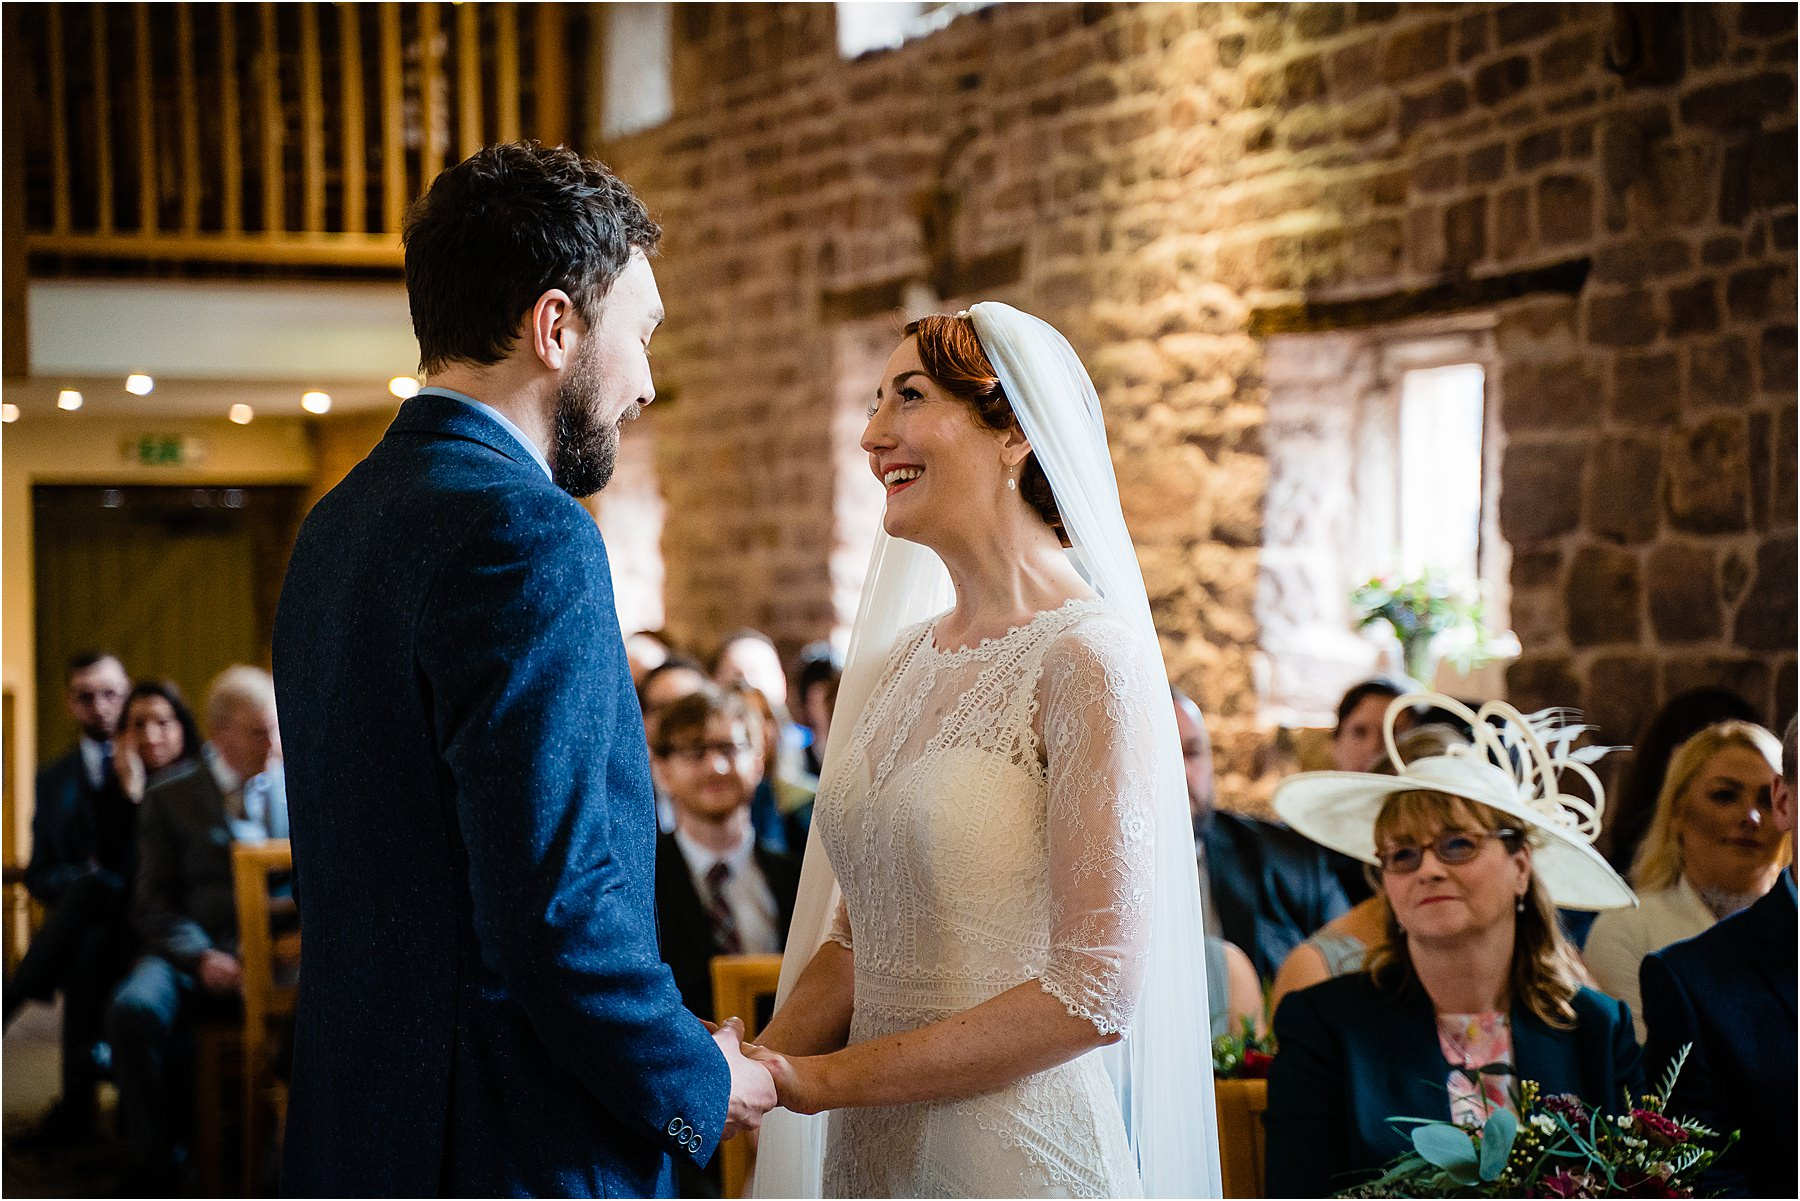 wedding ceremony at the ashes barns